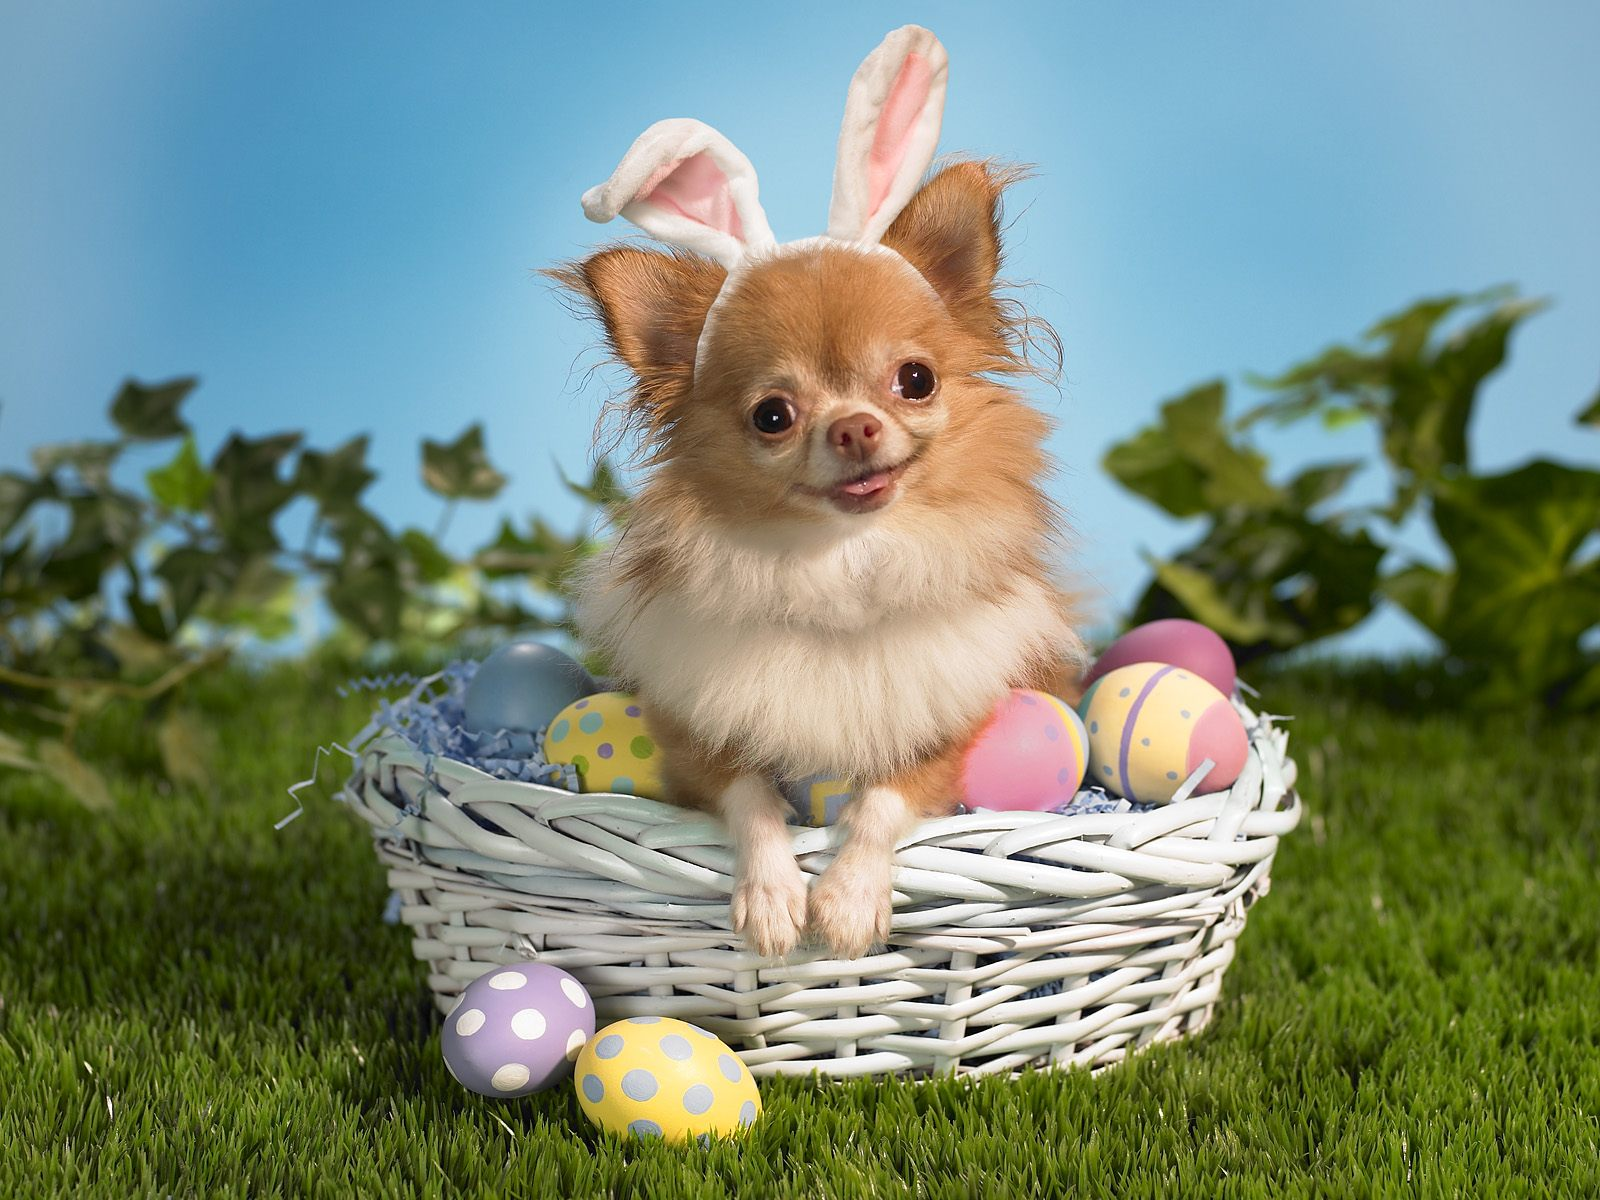 Image gallary 5 Beautiful Happy Easter Wallpapers for Desktop 1600x1200